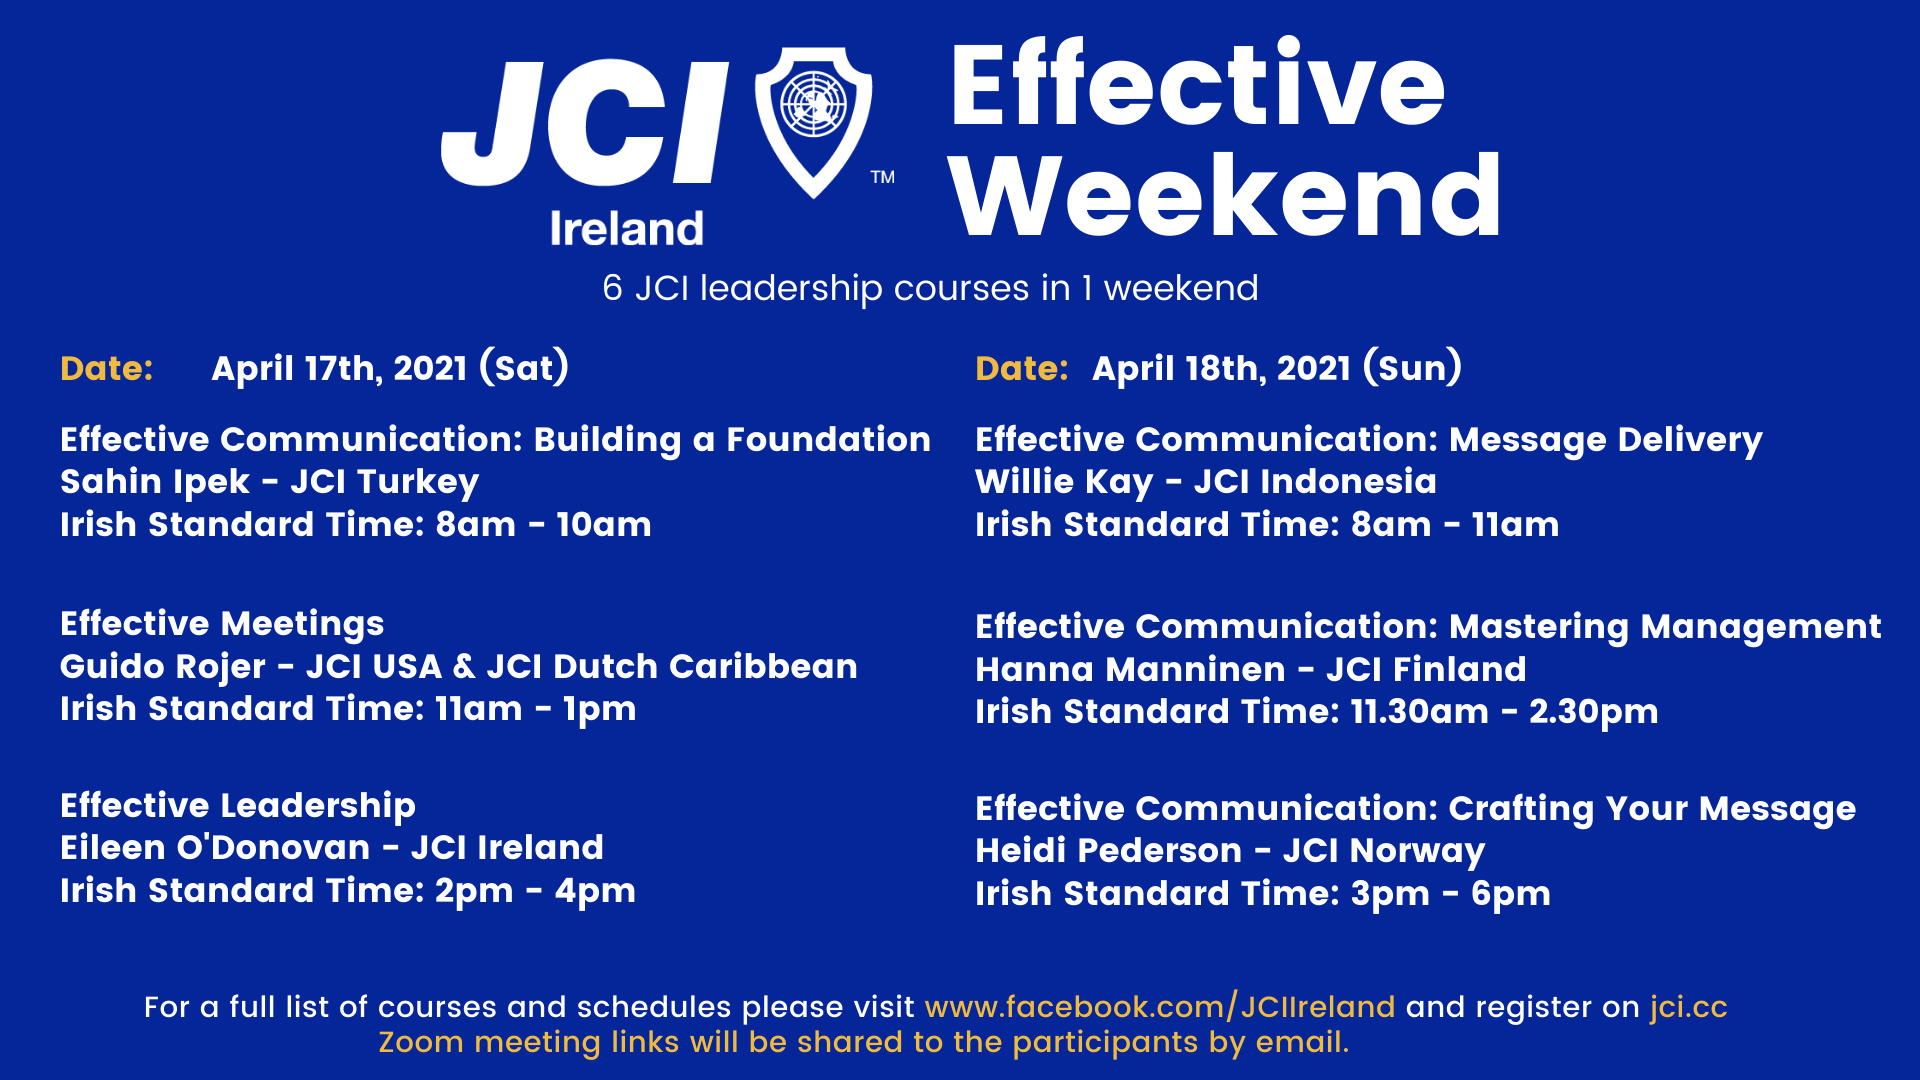 Effective Weekend 2021 - Effective Meetings